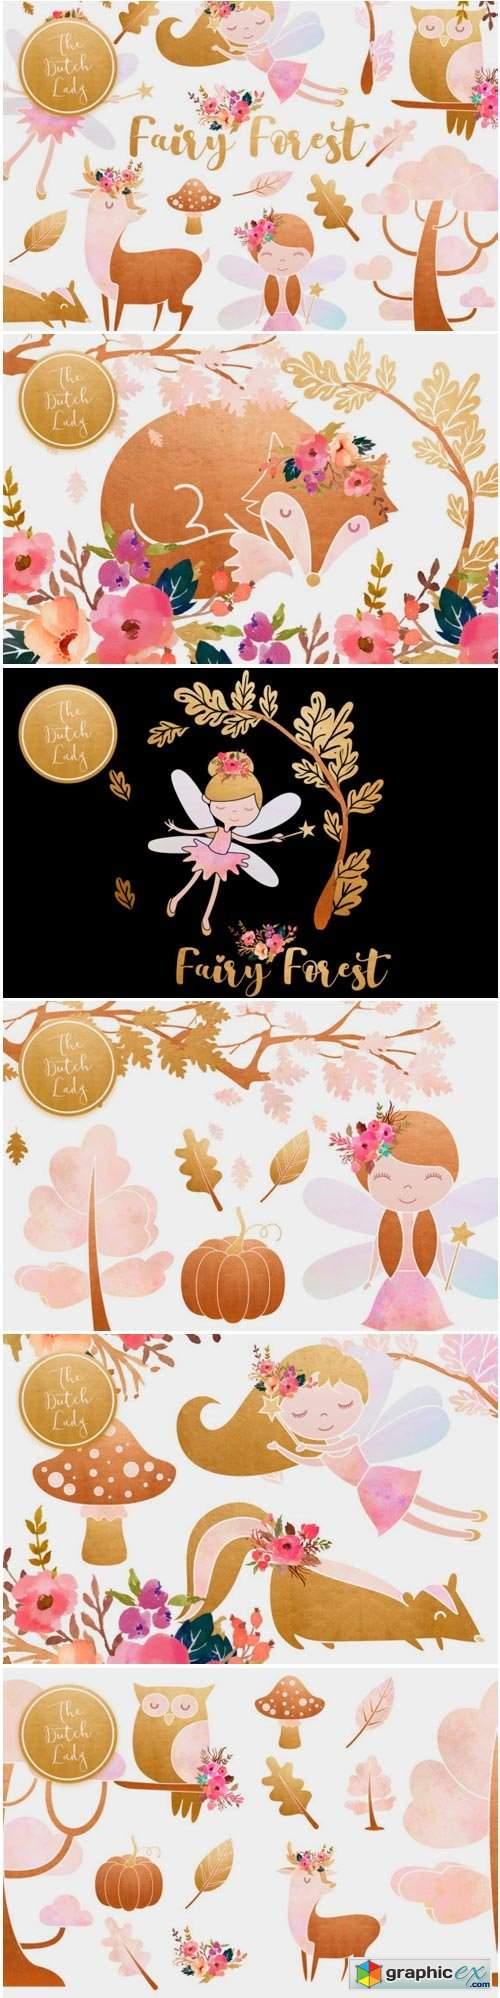 Enchanted Fairy Forest Clipart Set